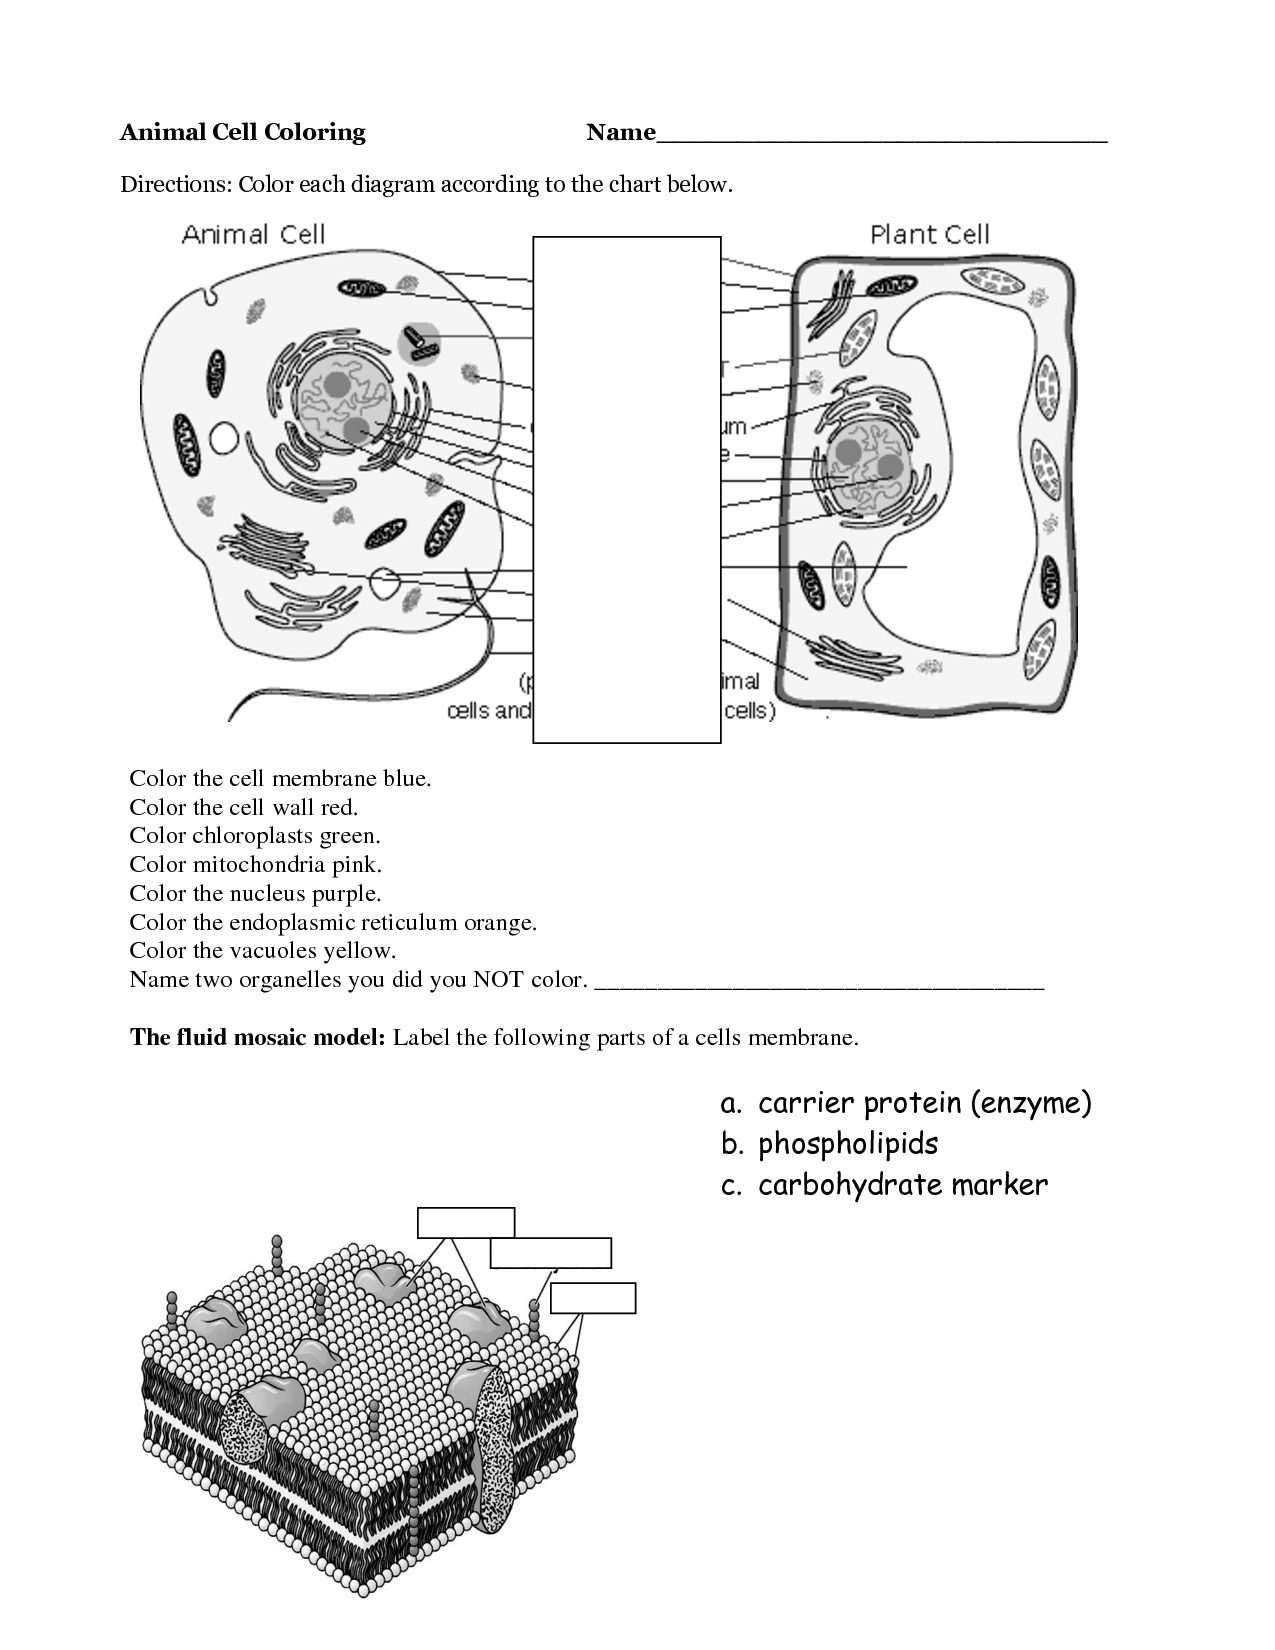 Printable Animal Cell Coloring Worksheet : Free coloring pages of plant cell worksheet